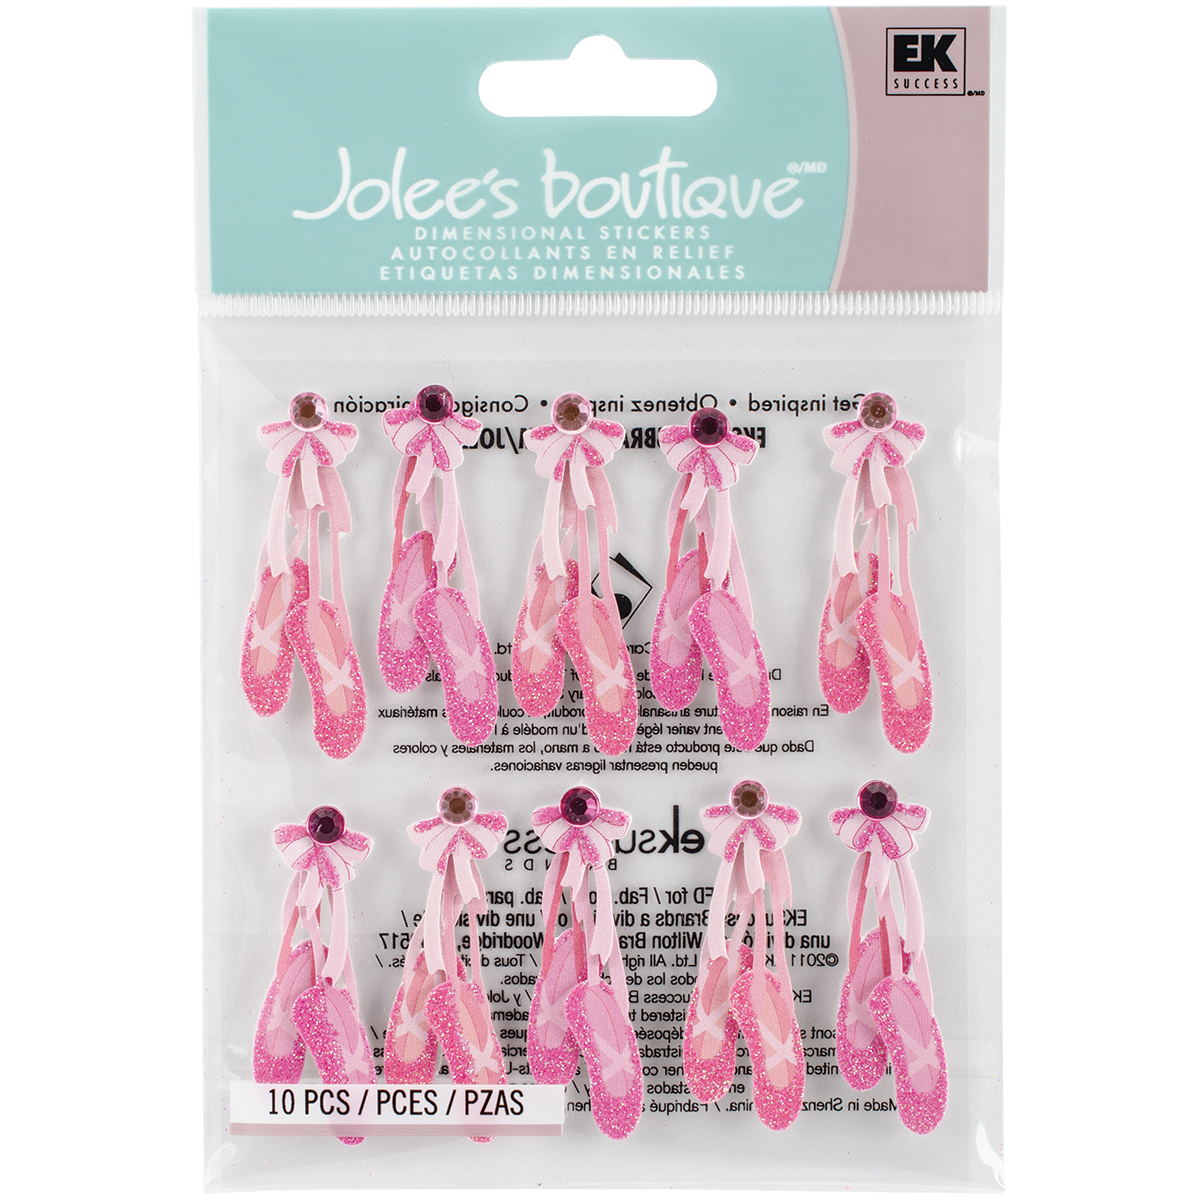 Jolee's Boutique Dimensional Stickers-Ballerina Slippers - image 1 of 1